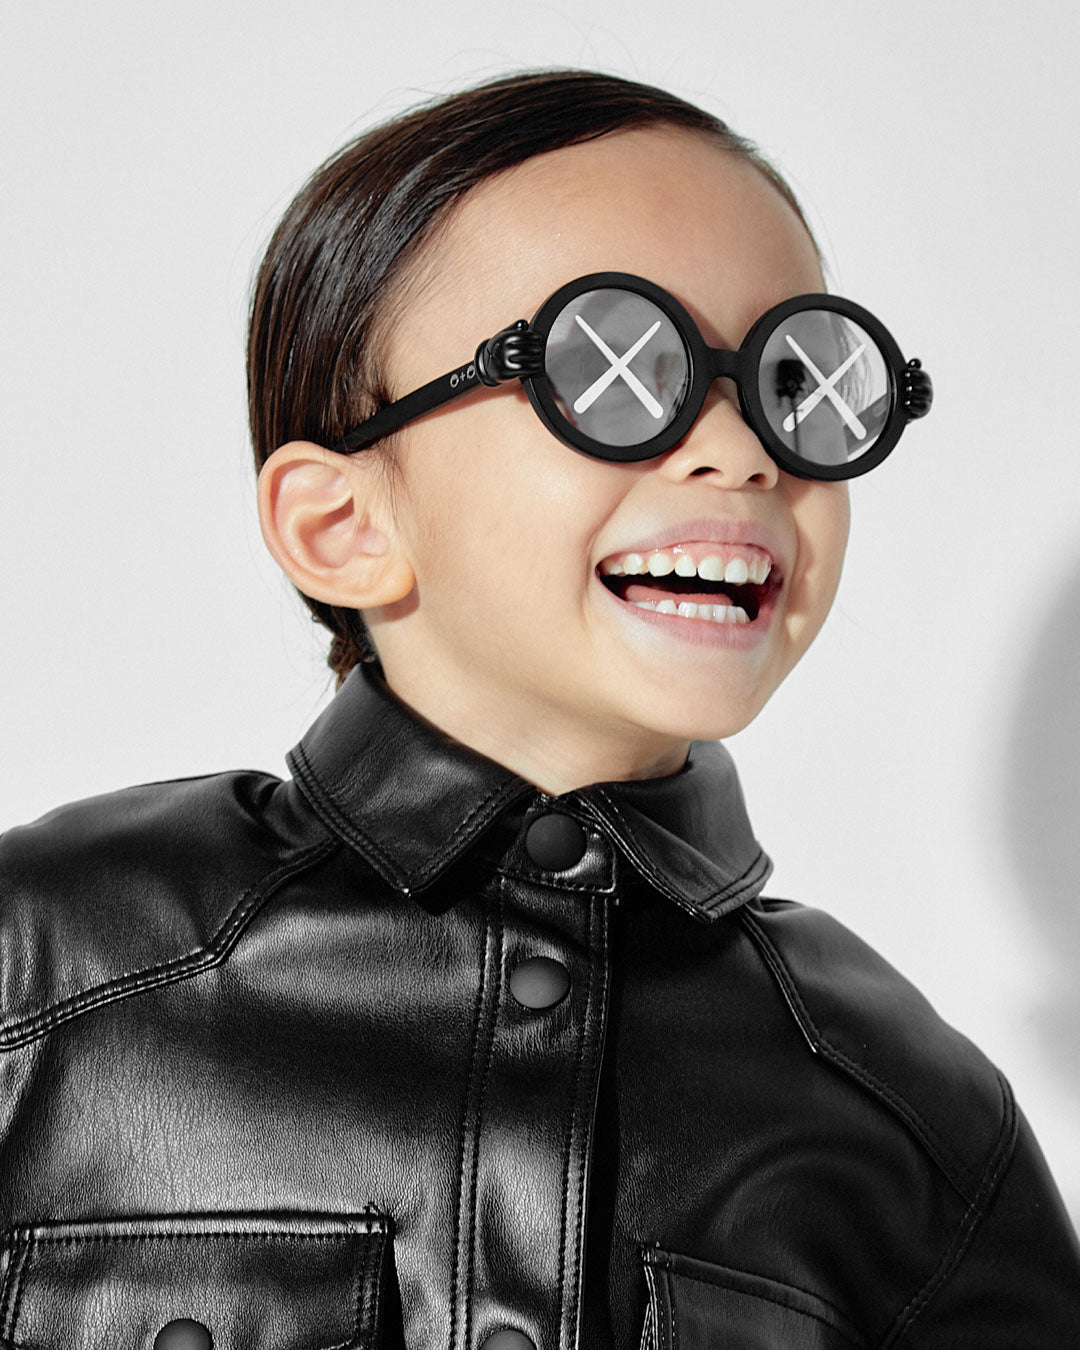 Sons_and_Daughters_Eyewear_Campaign_2020_KAWS_Childrens_Kids_Sunglasses